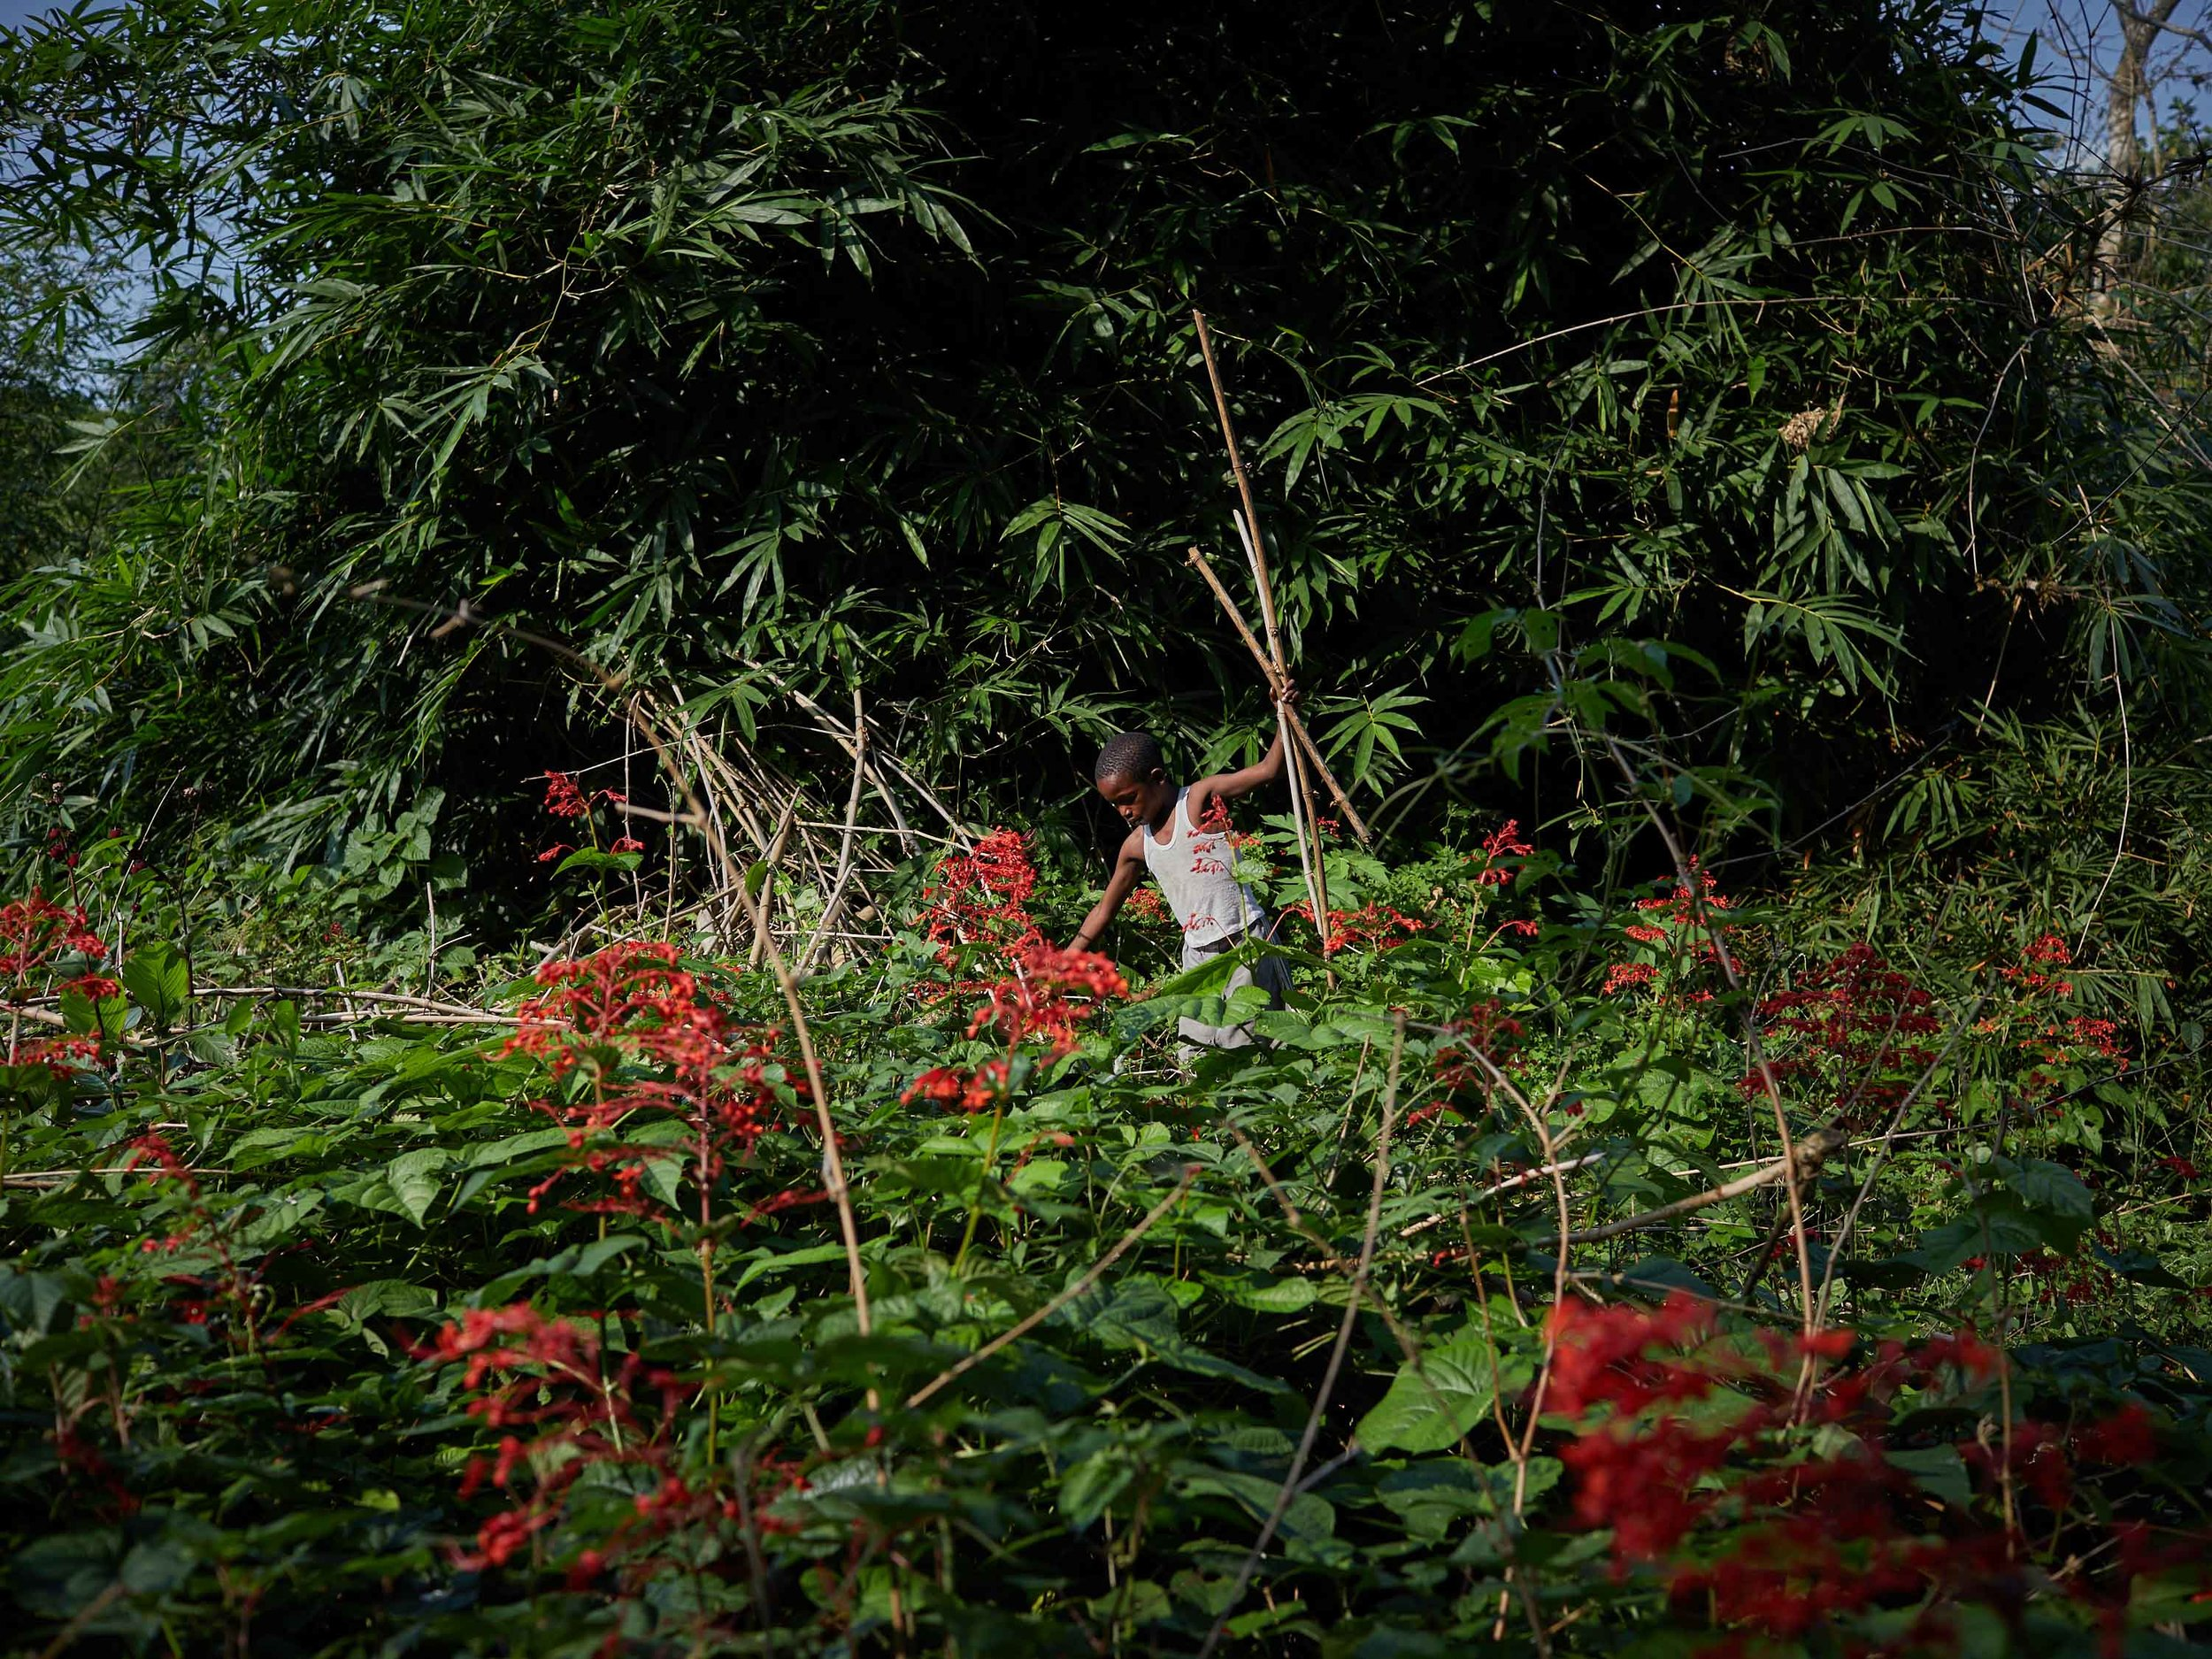 Jose Lisisa, 10, clears foliage around his village on the outskirts of Mbandaka, Equateur Province. Working amidst undergrowth creates a snakebite risk as well-camouflaged vipers and cobras can be disturbed and strike.